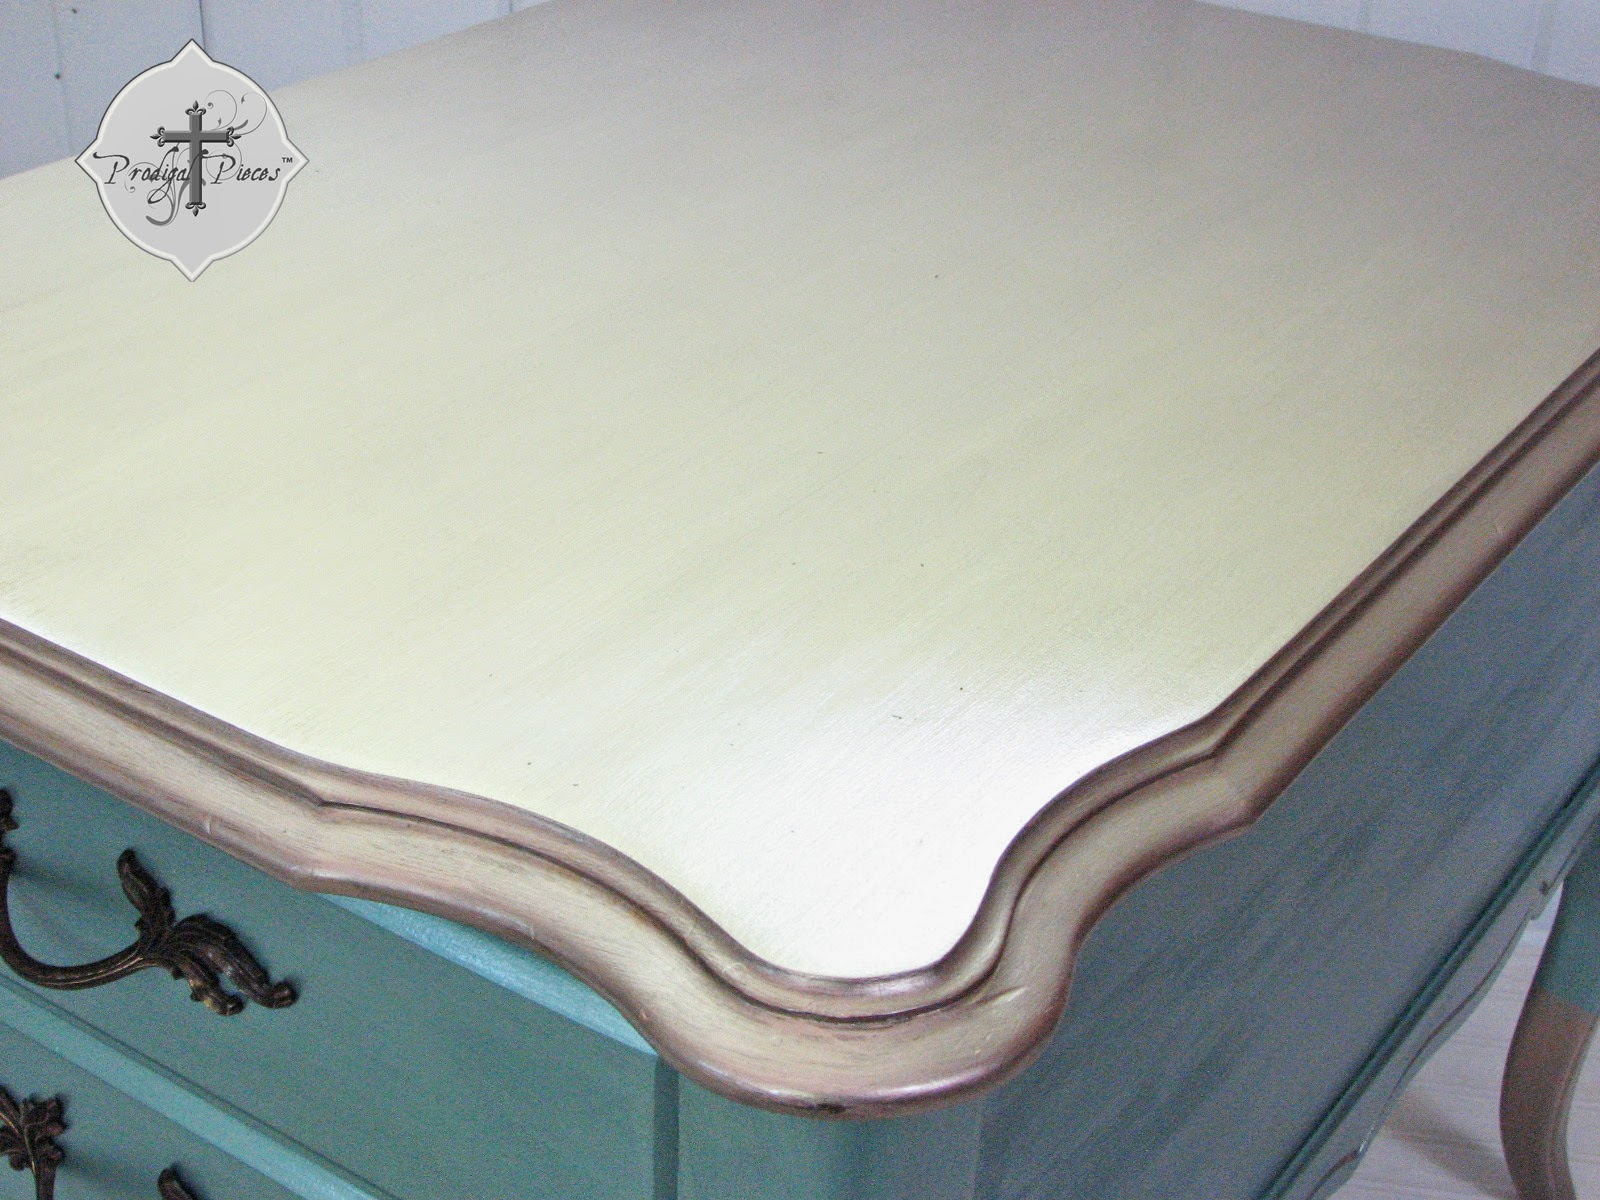 Modern Masters Warm Silver Metallic Paint by Prodigal Pieces | prodigalpieces.com